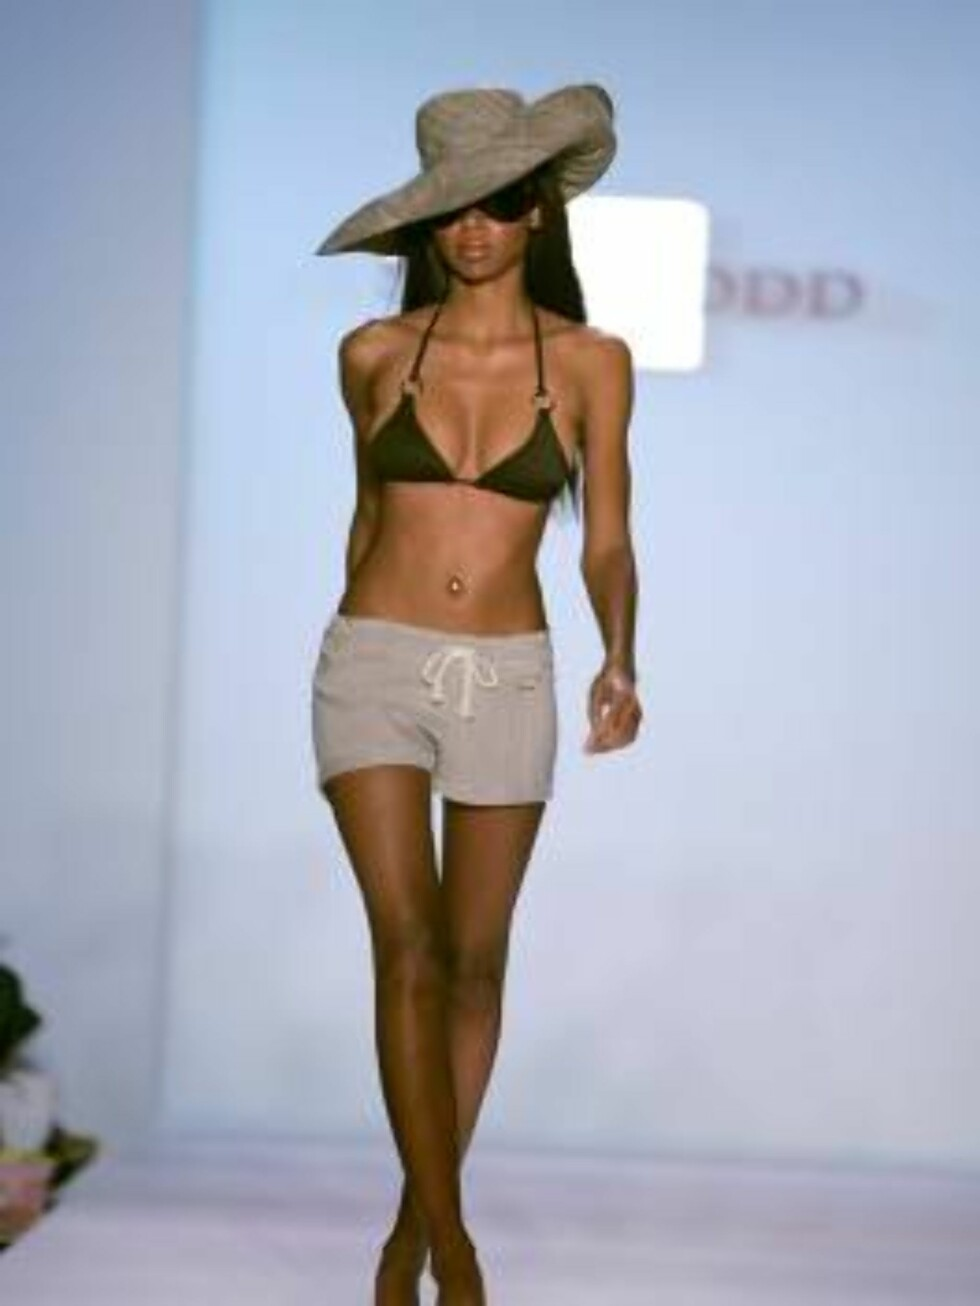 <strong>MIAMI - JULY 18:</strong>  A model walks the runway at the Shay Todd Summer 2007 fashion show during the Sunglass Hut Swim Shows Miami in the Cabana Grande tent at the Raleigh Hotel on July 18, 2006 in Miami, Florida.  (Photo by Carlo Allegri/Getty Images for IMG) Foto: All Over Press